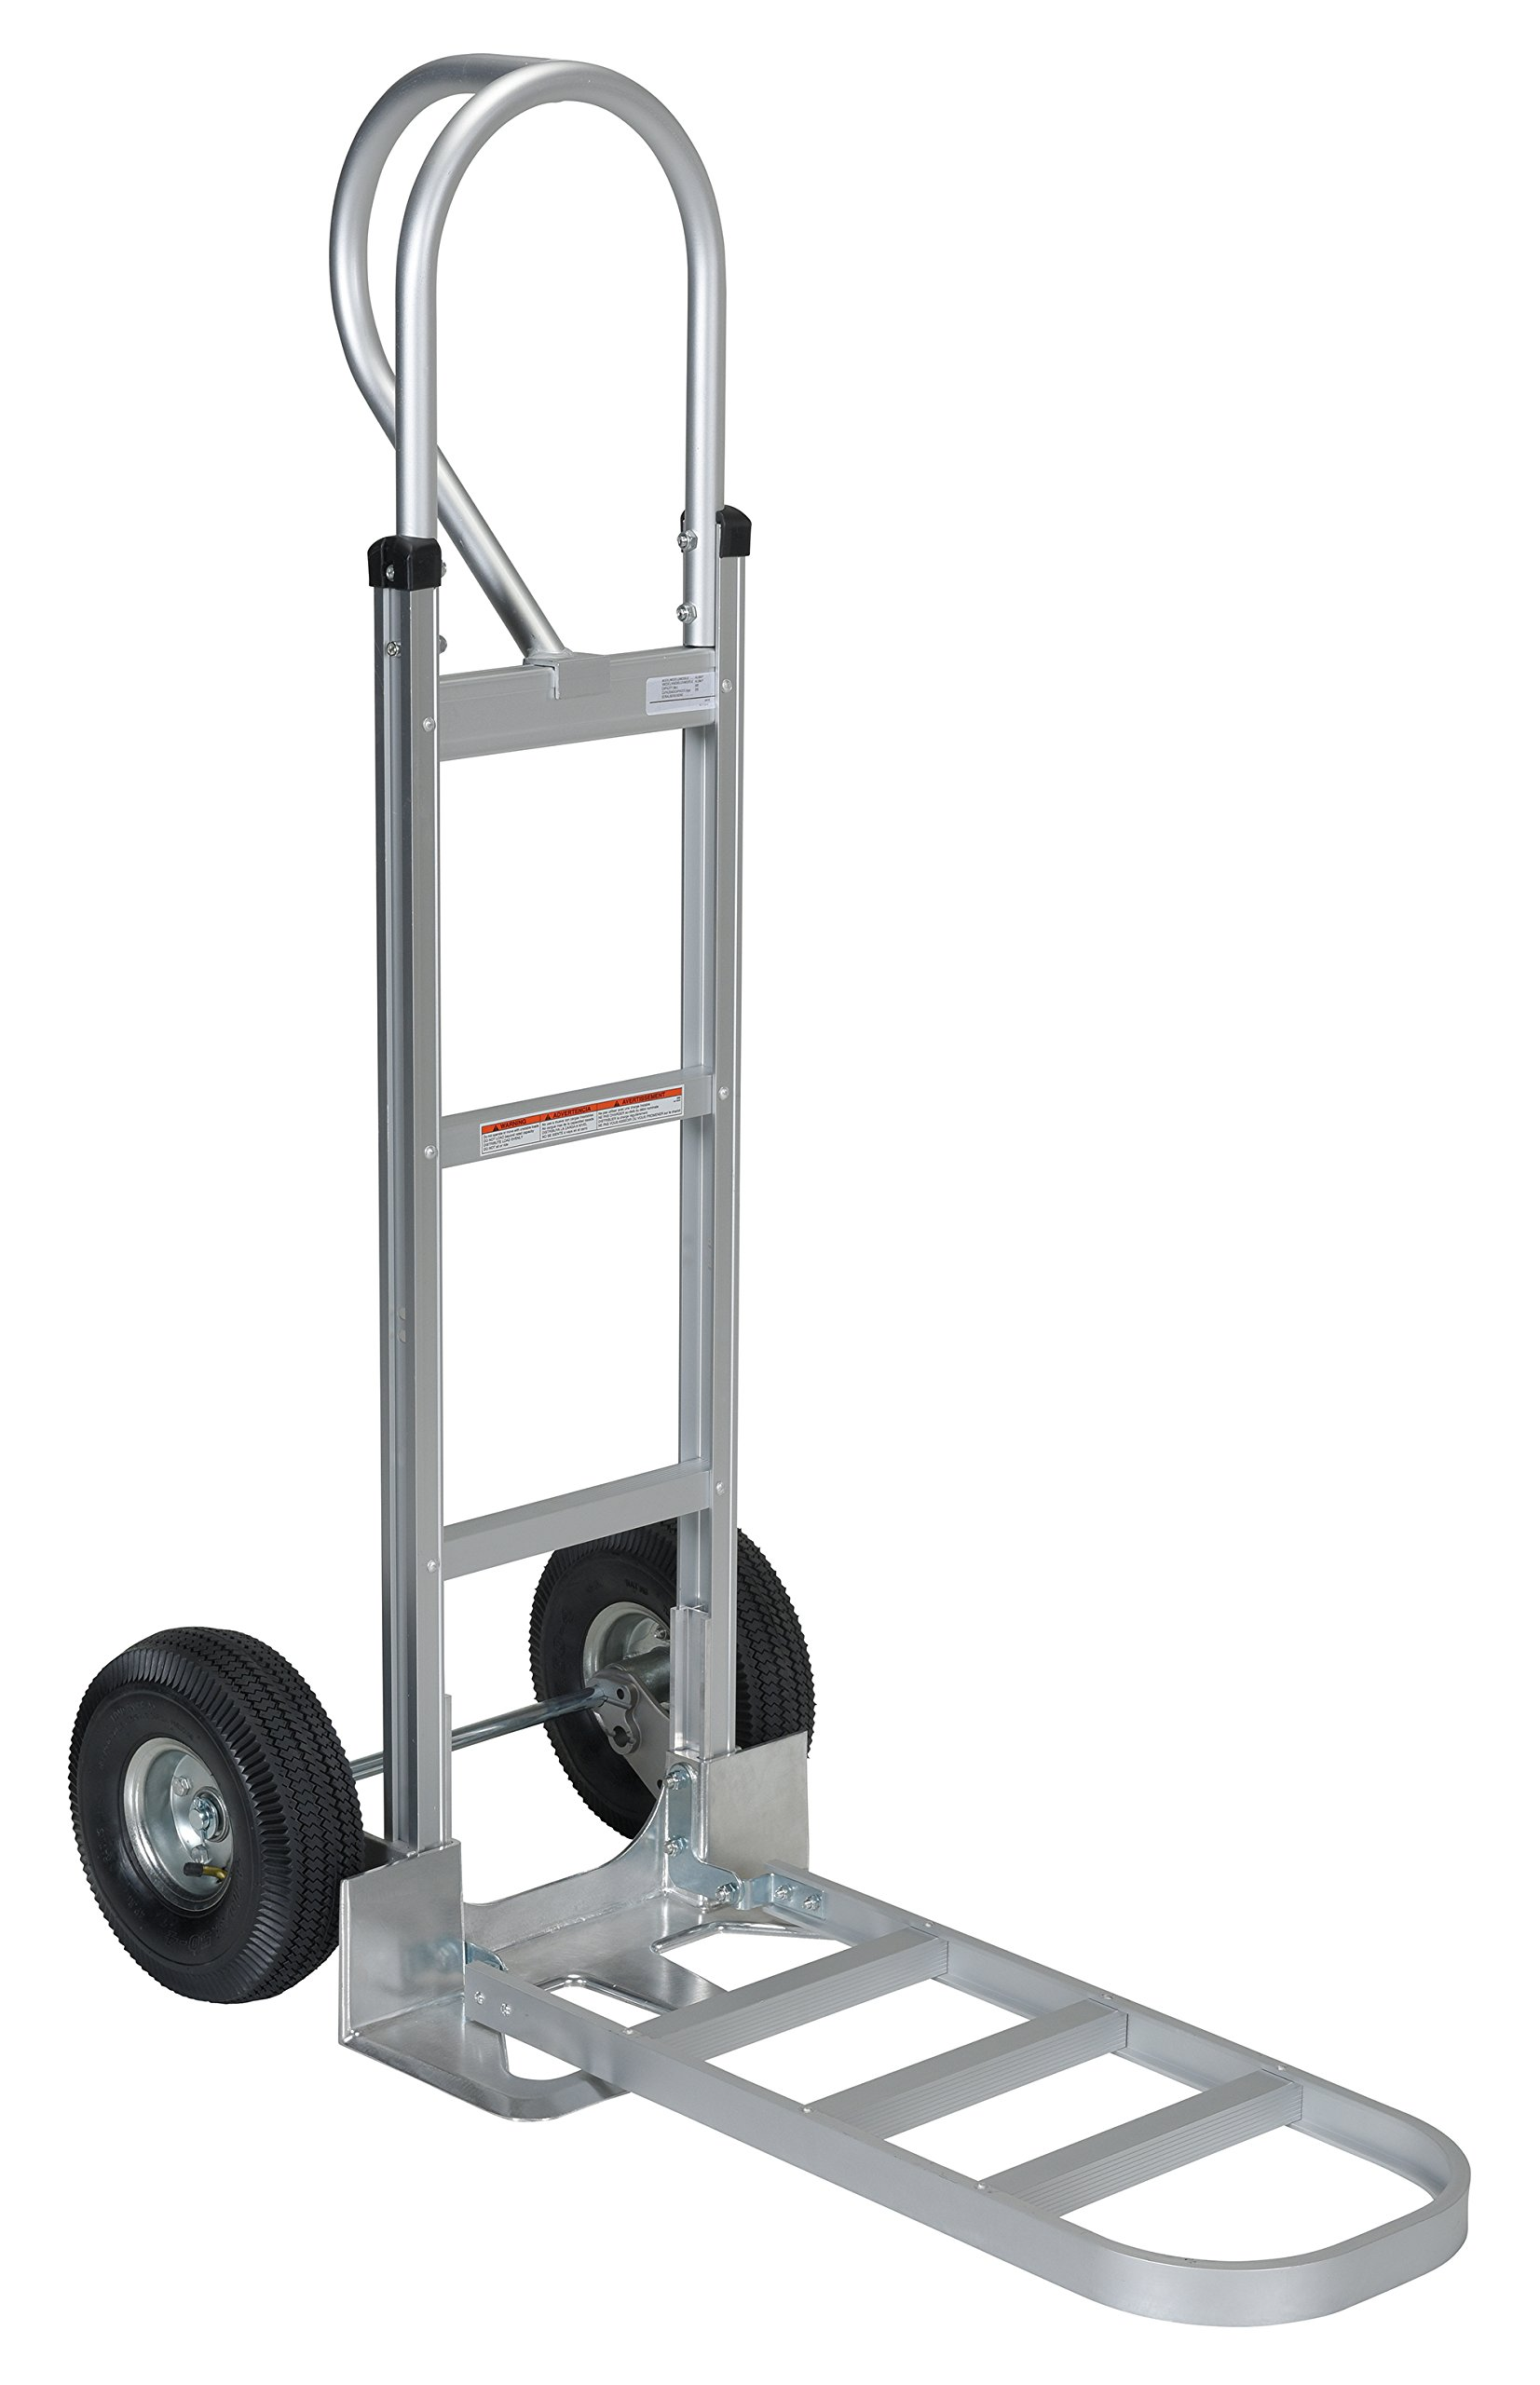 Vestil APHT-500A Aluminum Hand Truck with P Handle, Pneumatic Wheels, 300 lbs Load Capacity, 50-1/2'' Height, 20'' Width X 19'' Depth